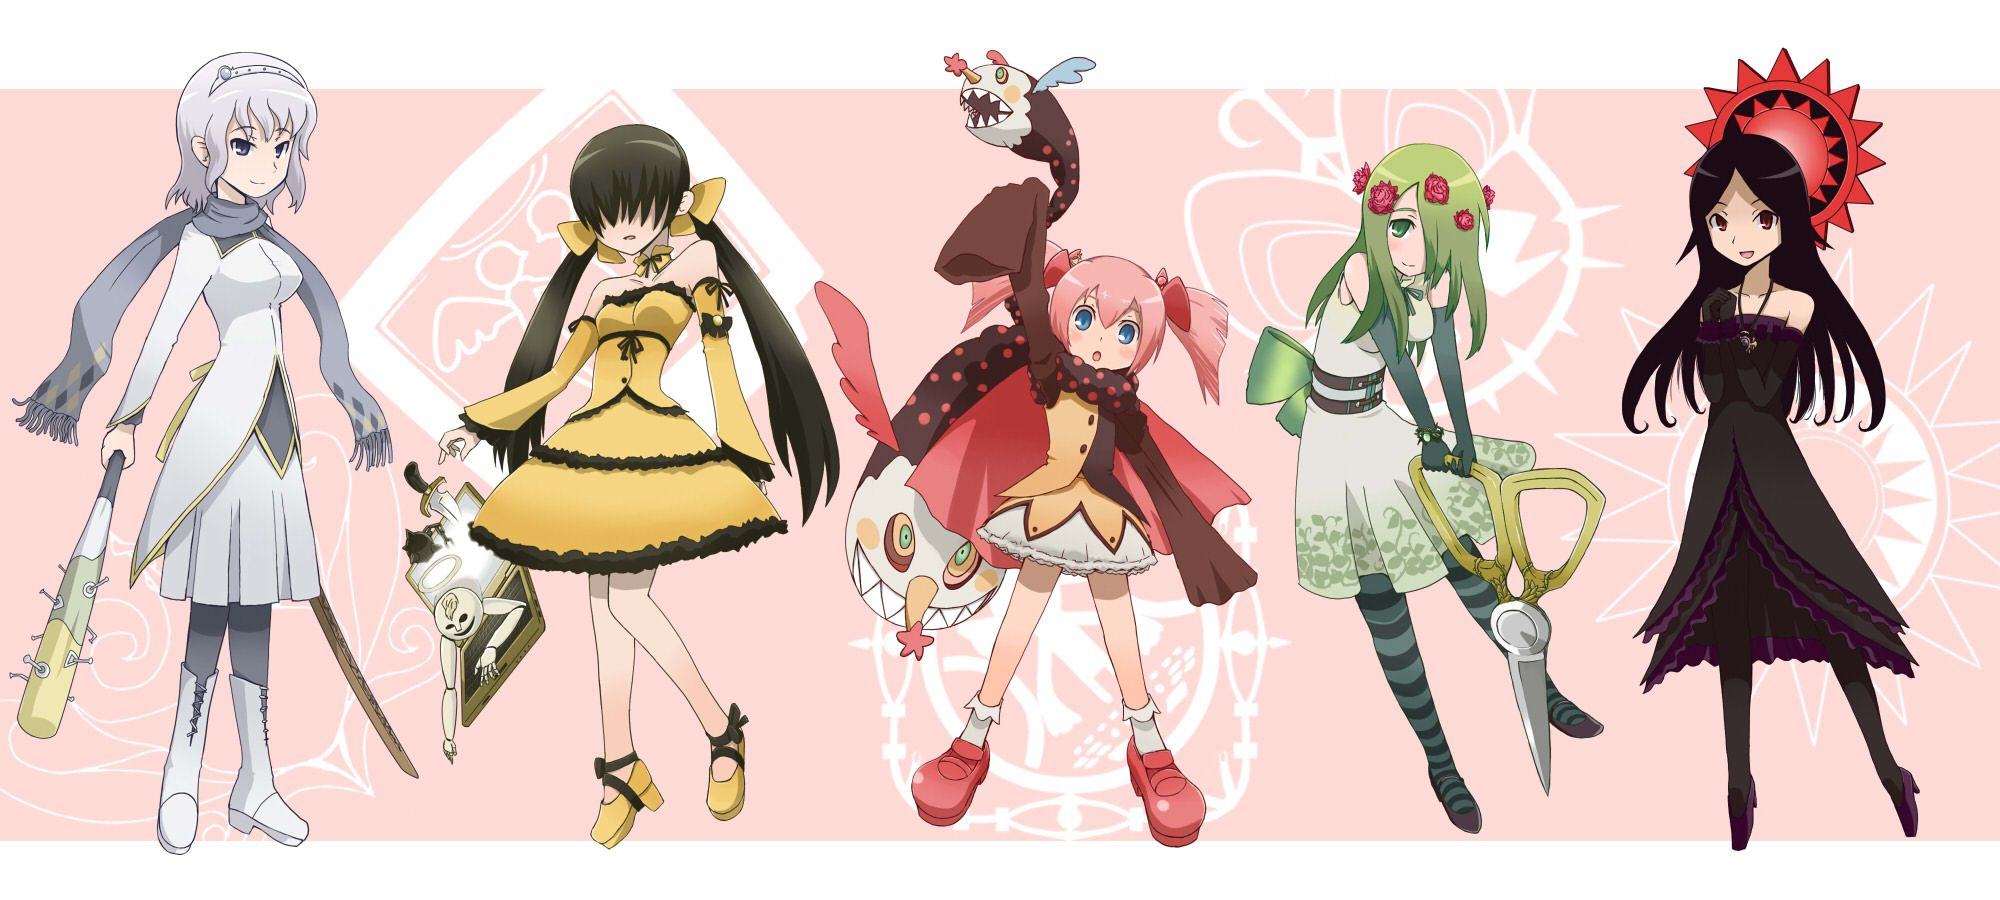 Witches From Madoka Magica As Magical Girls My Favourites Are Charlotte Gertrude And Ellie Madoka Magica Anime Witch Magical Girl